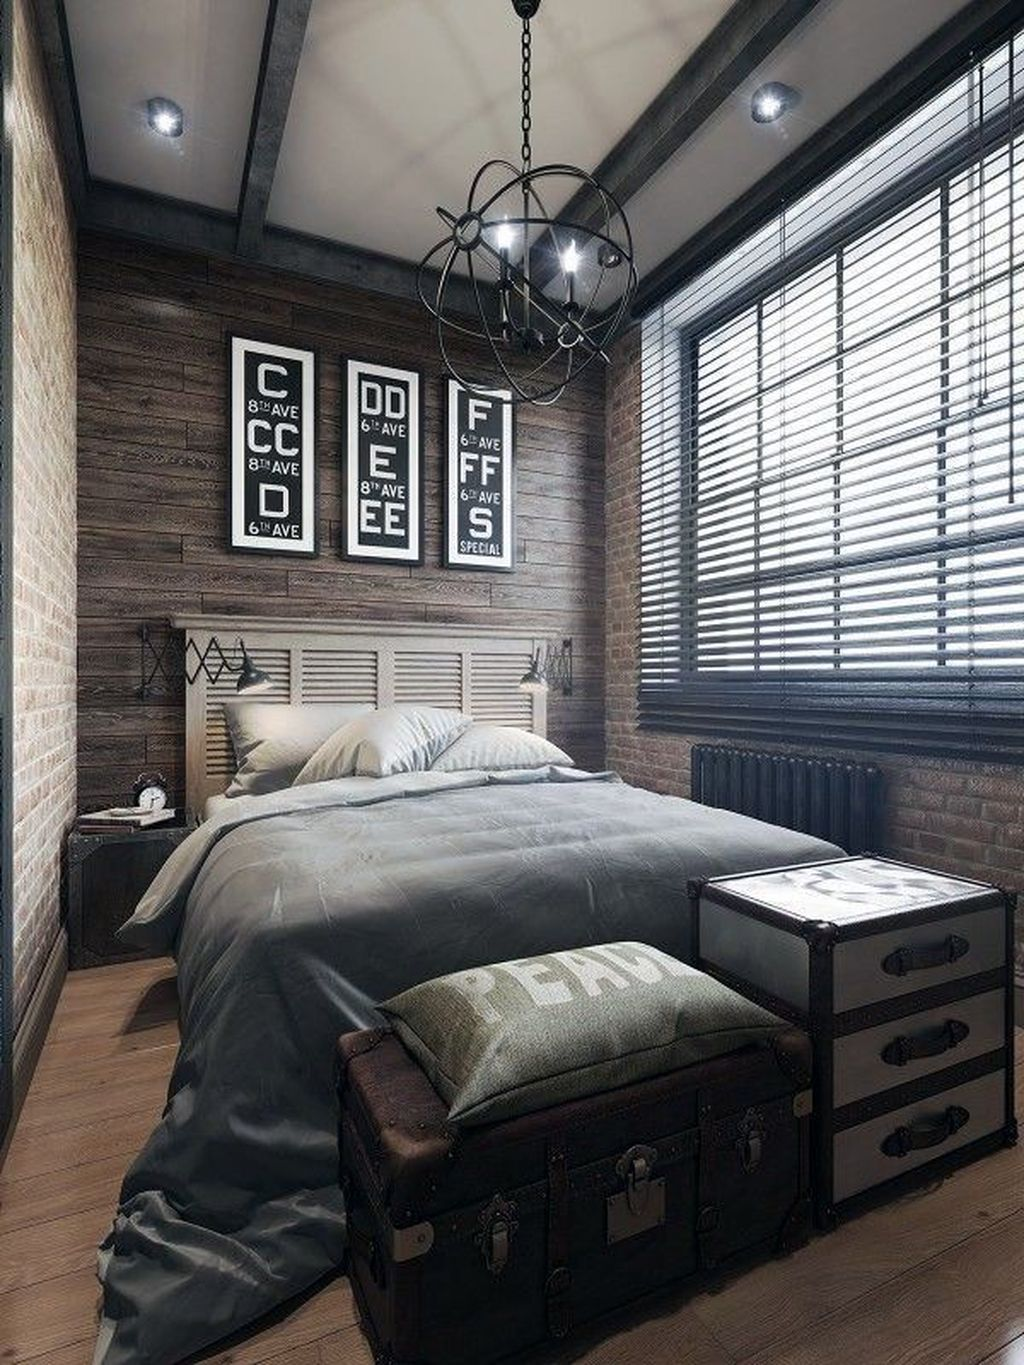 Cool 47 Elegant Master Bedroom Decoration Ideas On A Budget. More at ...